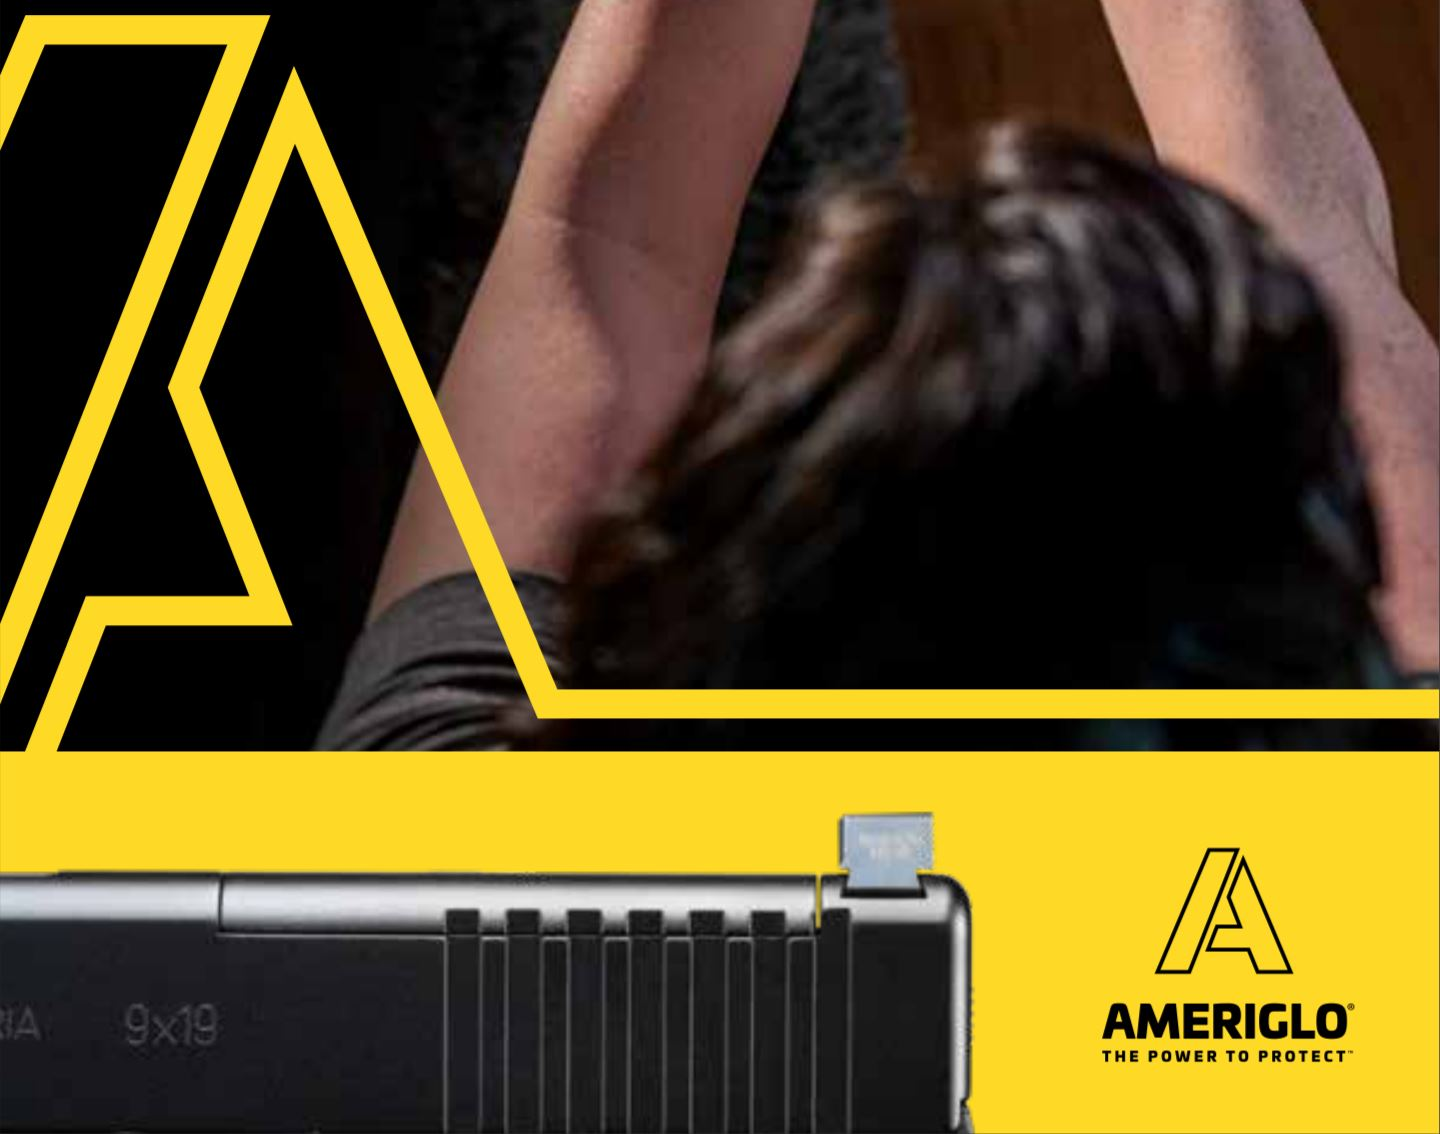 AMERIGLO Updates Branding and Reorganizes Product Lines